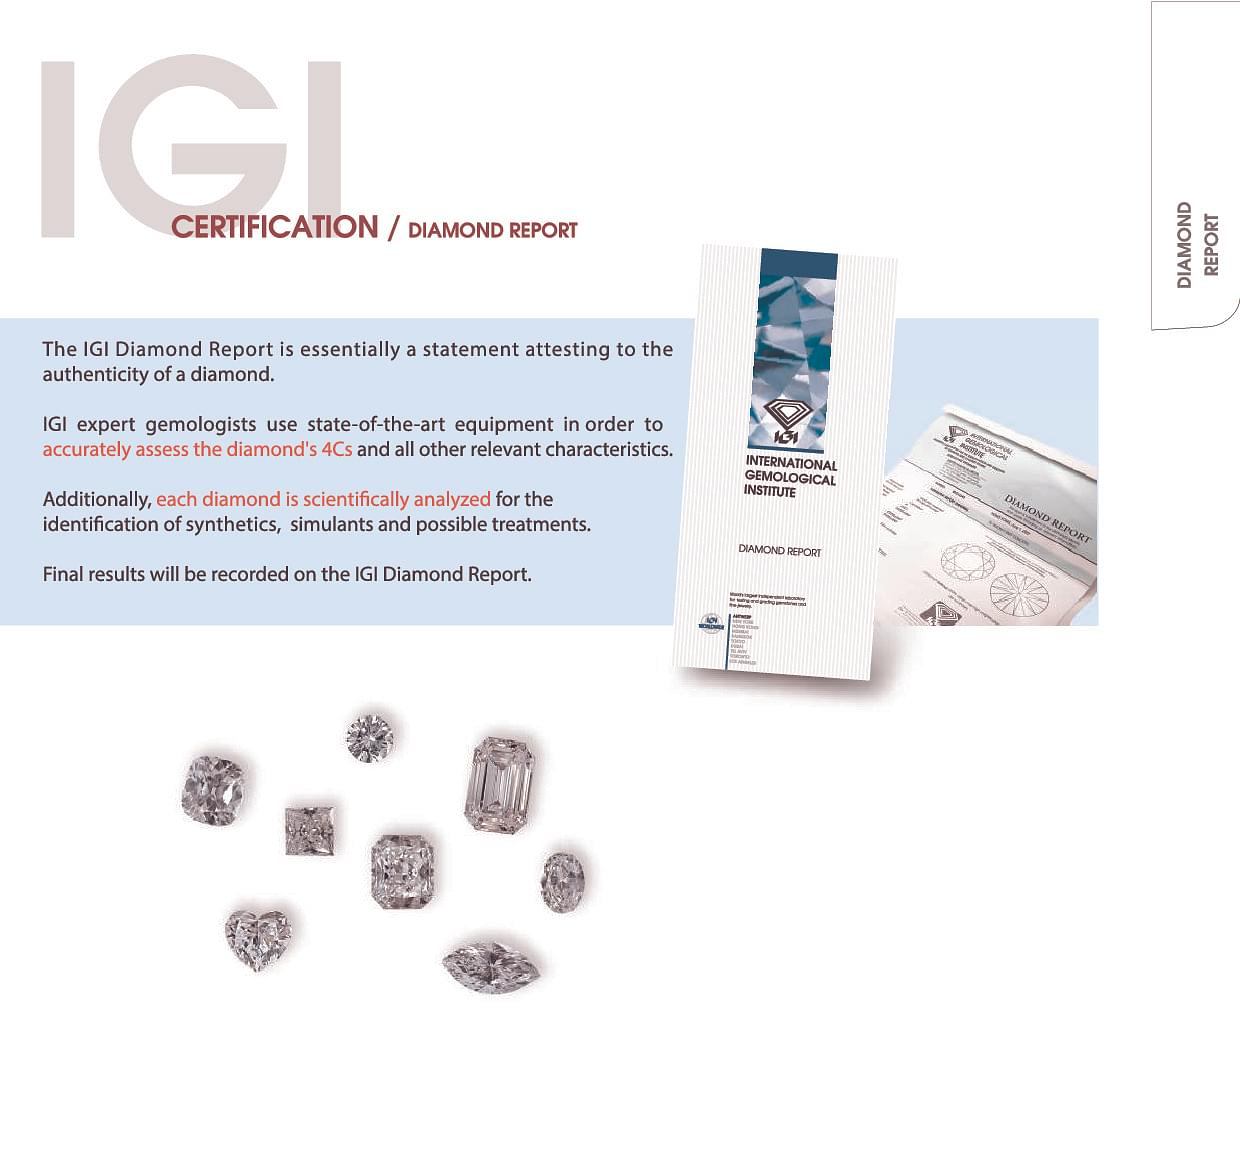 igi education information online diamond certificates centre